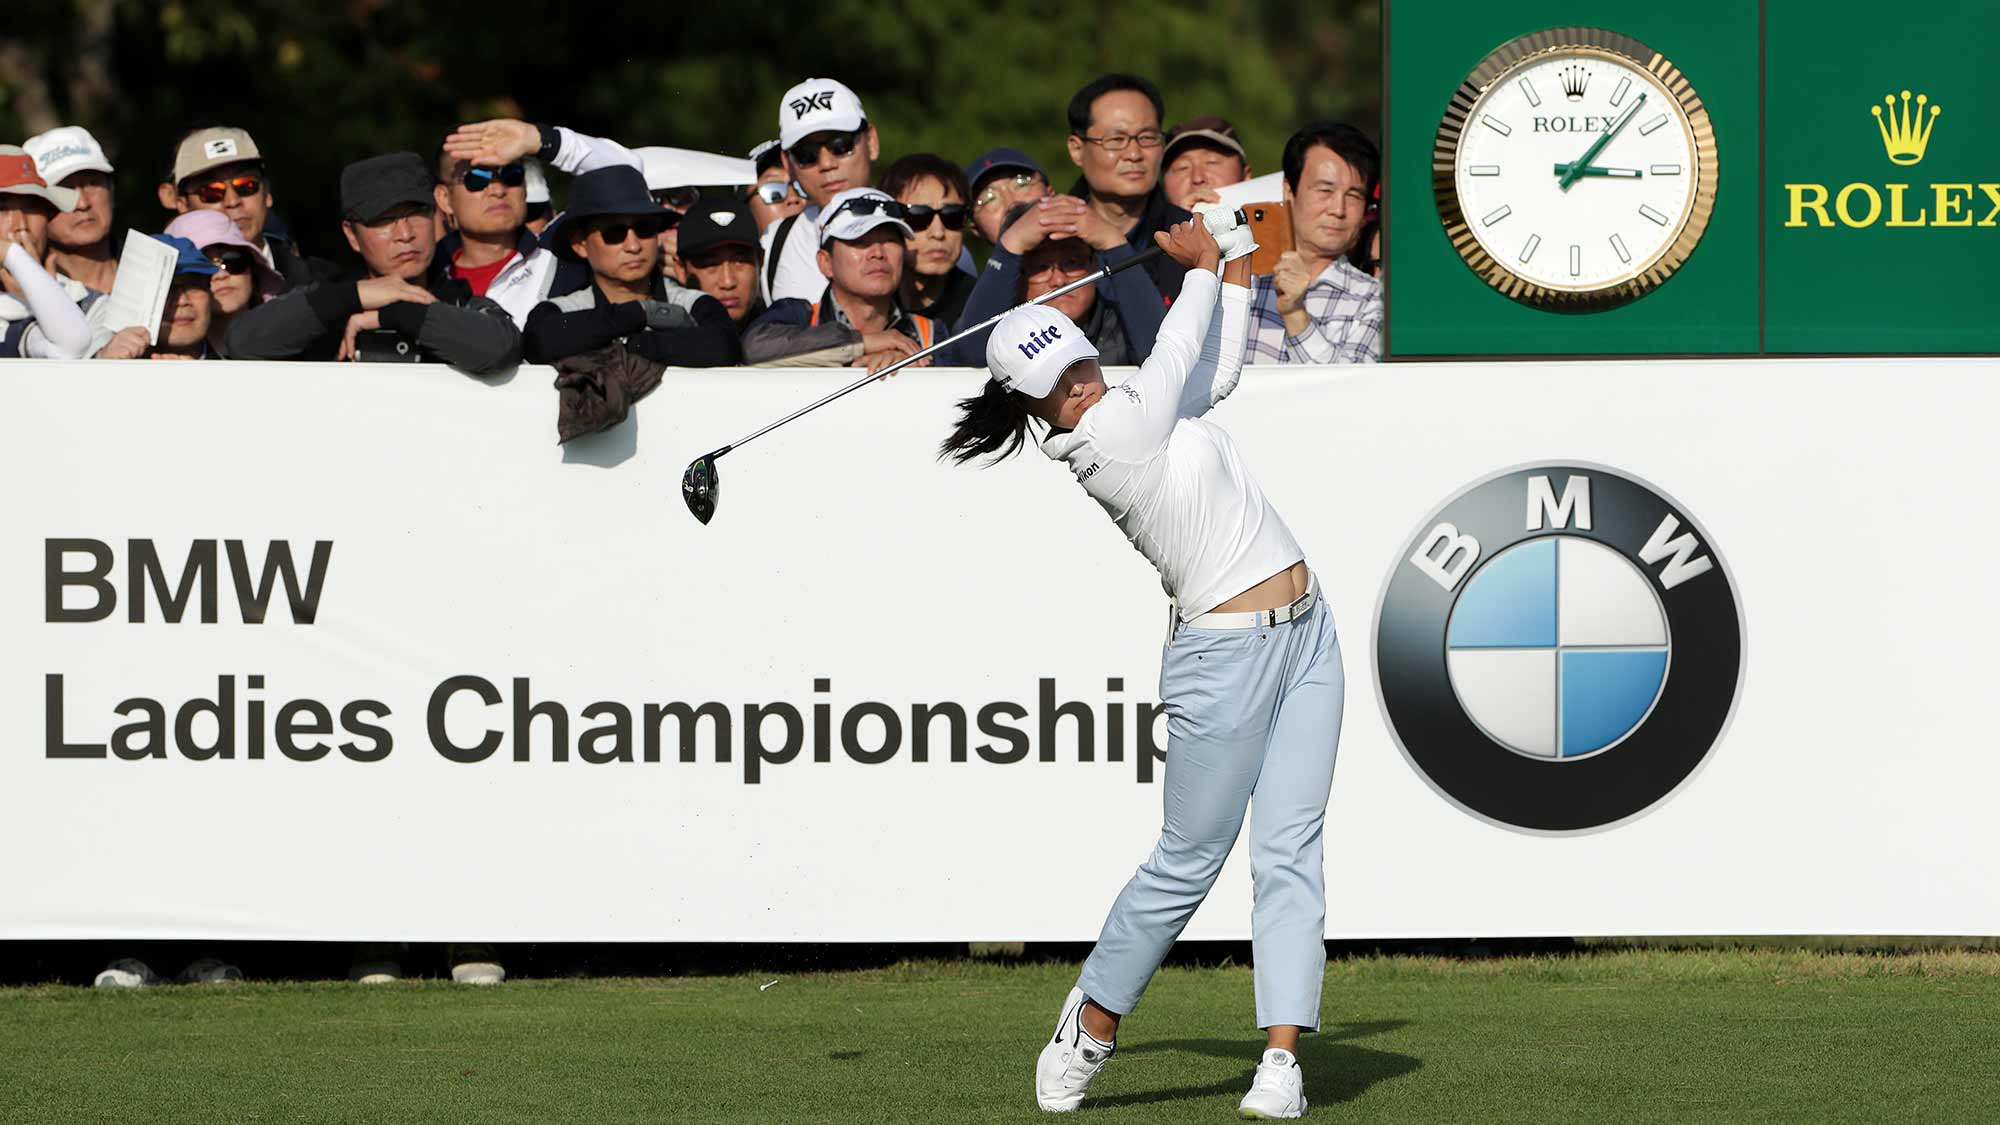 Jin Young Ko of the Republic of Korea drives from a tee on the eighteenth hole during Round 3 of 2019 BMW Ladies Championship at LPGA International Busan on October 26, 2019 in Busan, Republic of Korea